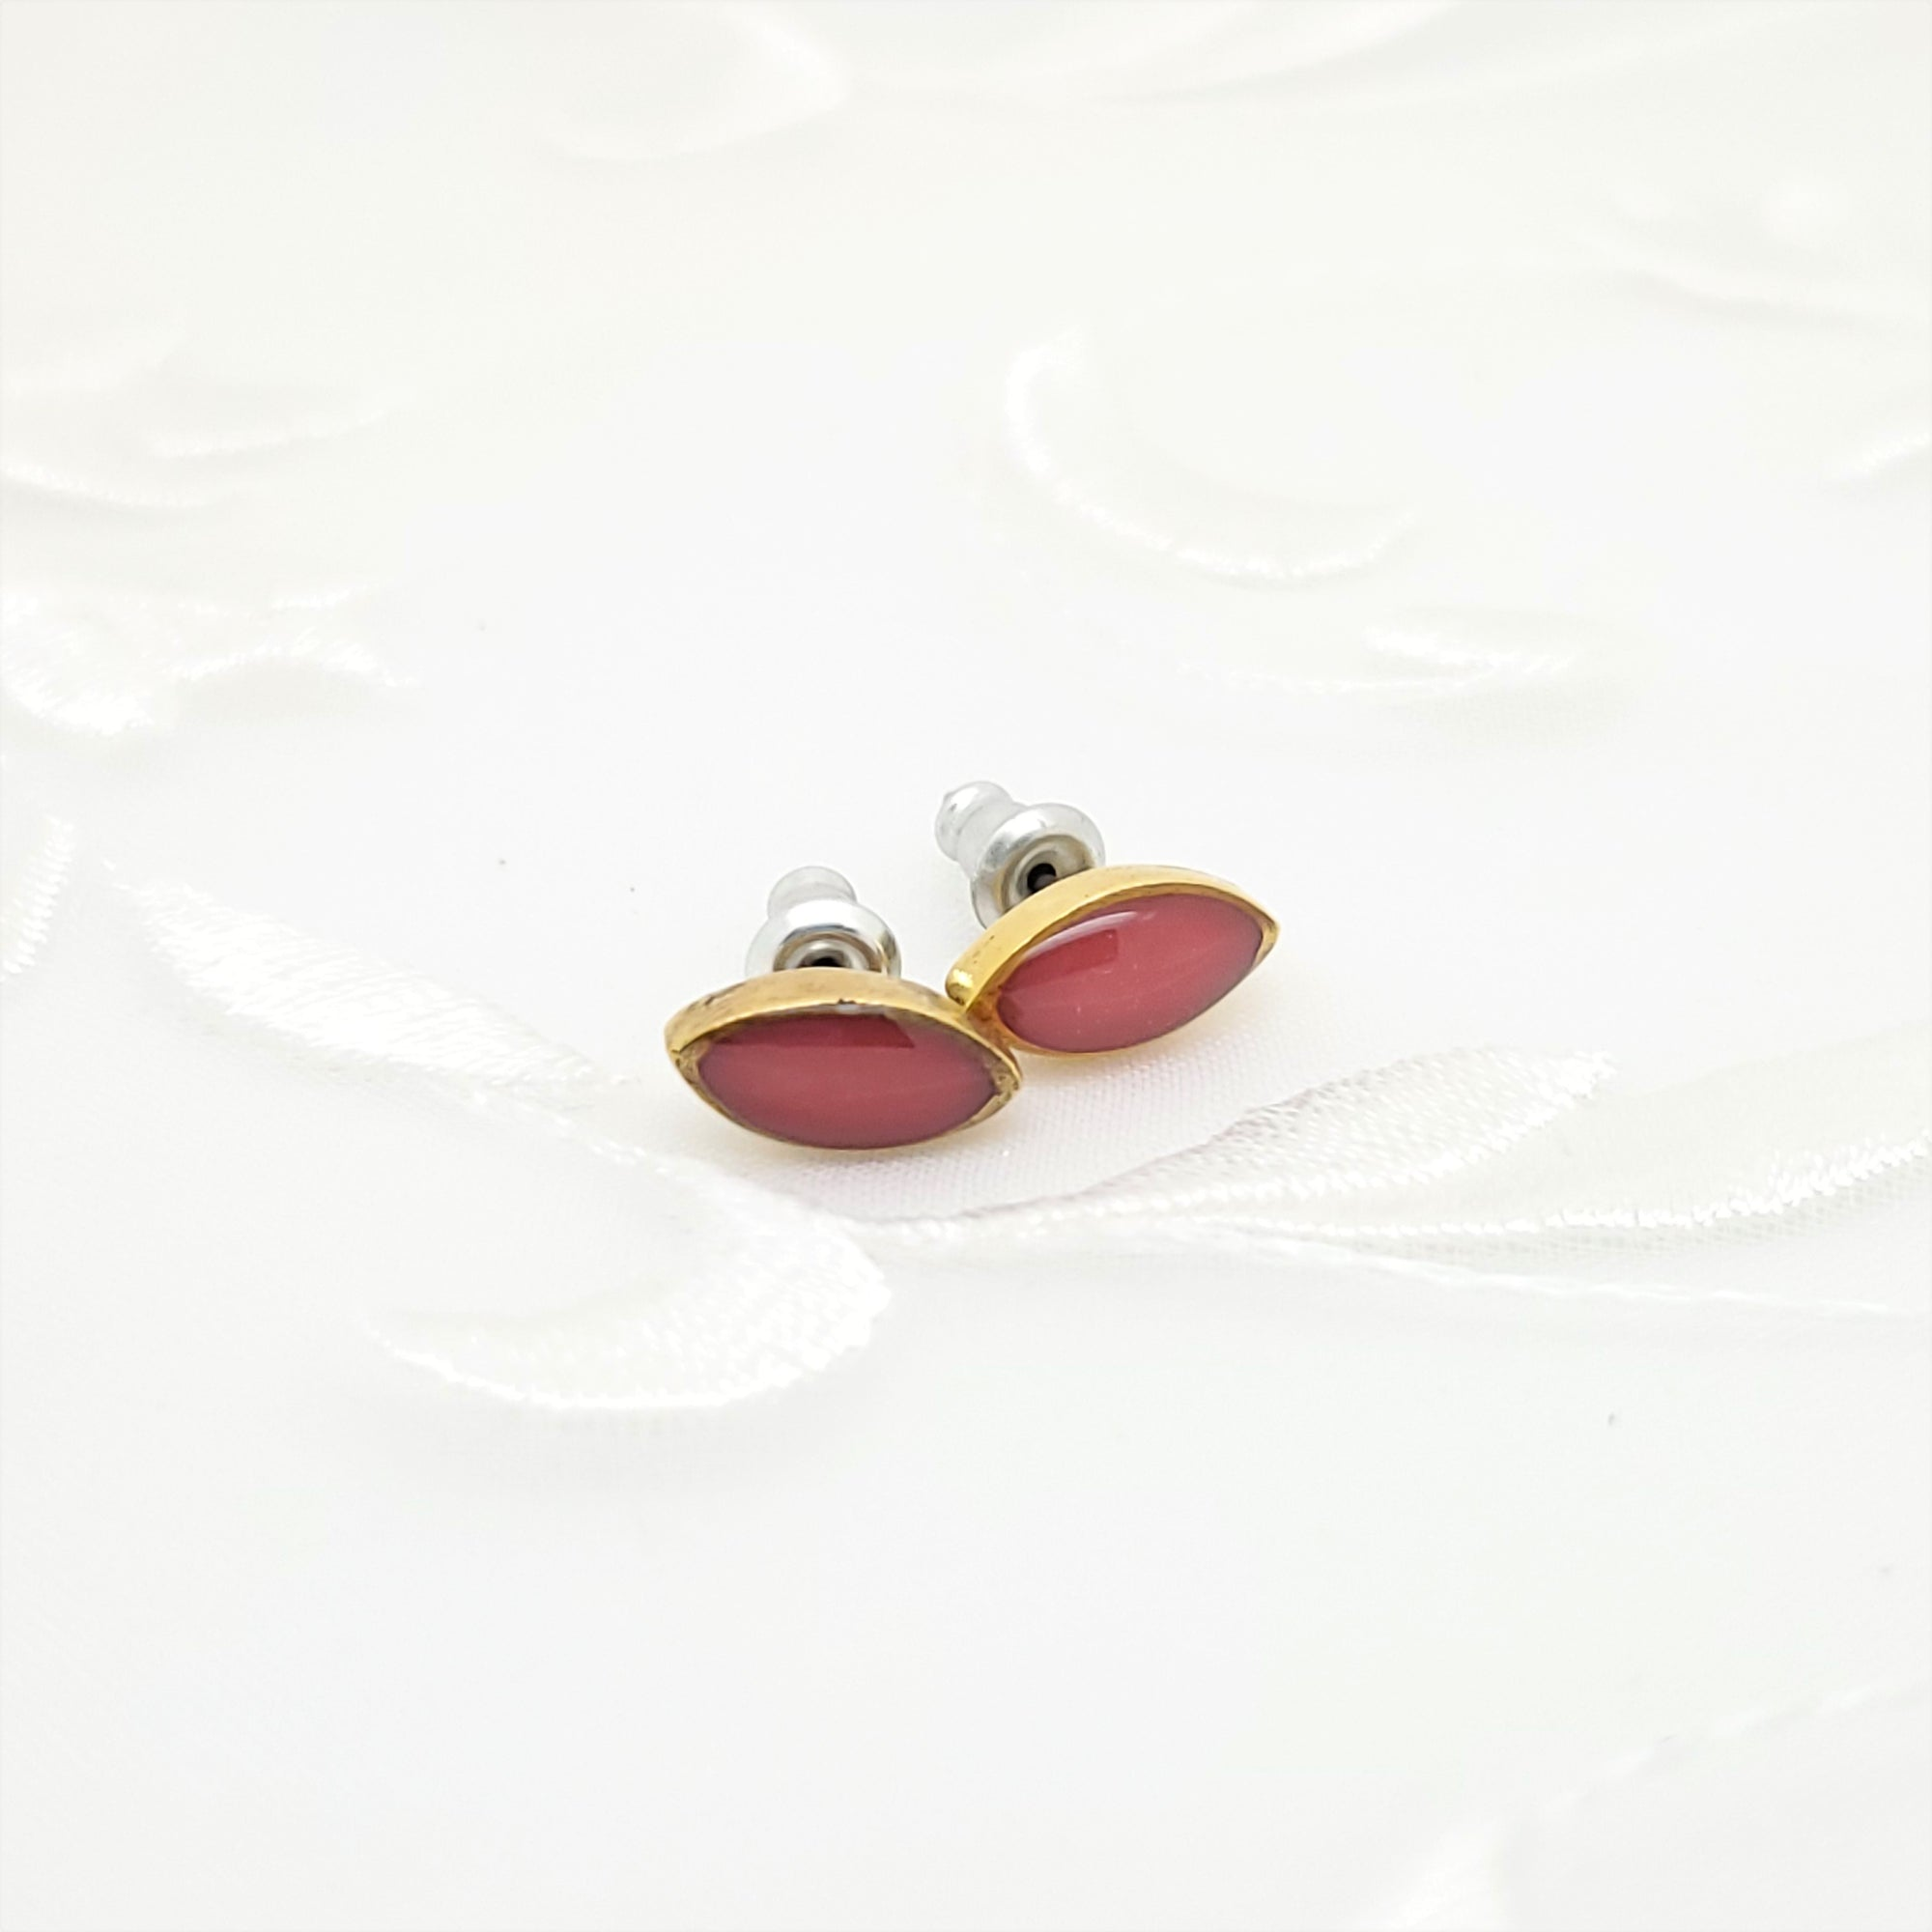 Antique Gold Navette Stud Earrings with Coral Red Resin